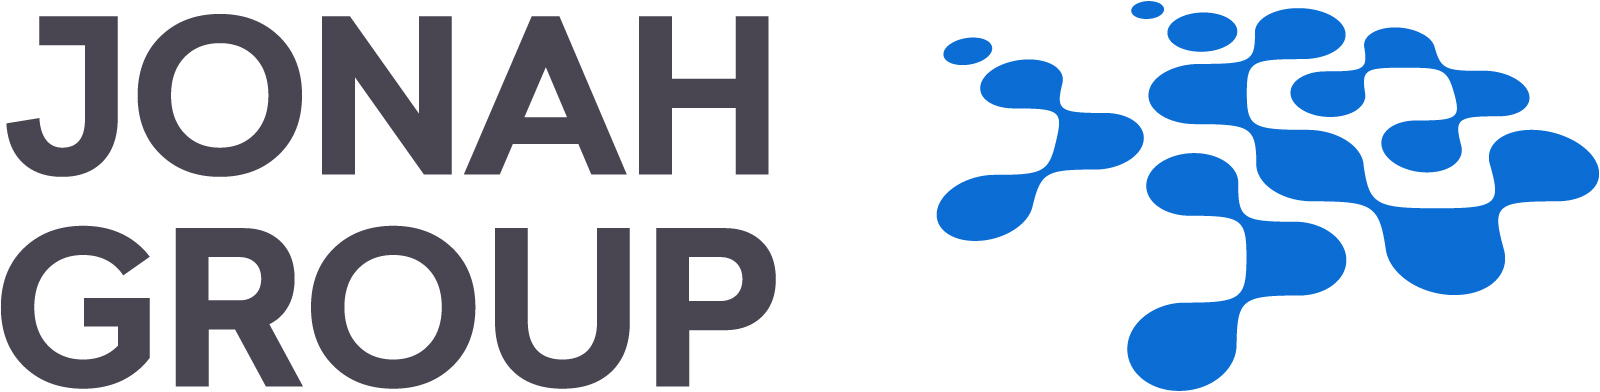 The Jonah Group logo